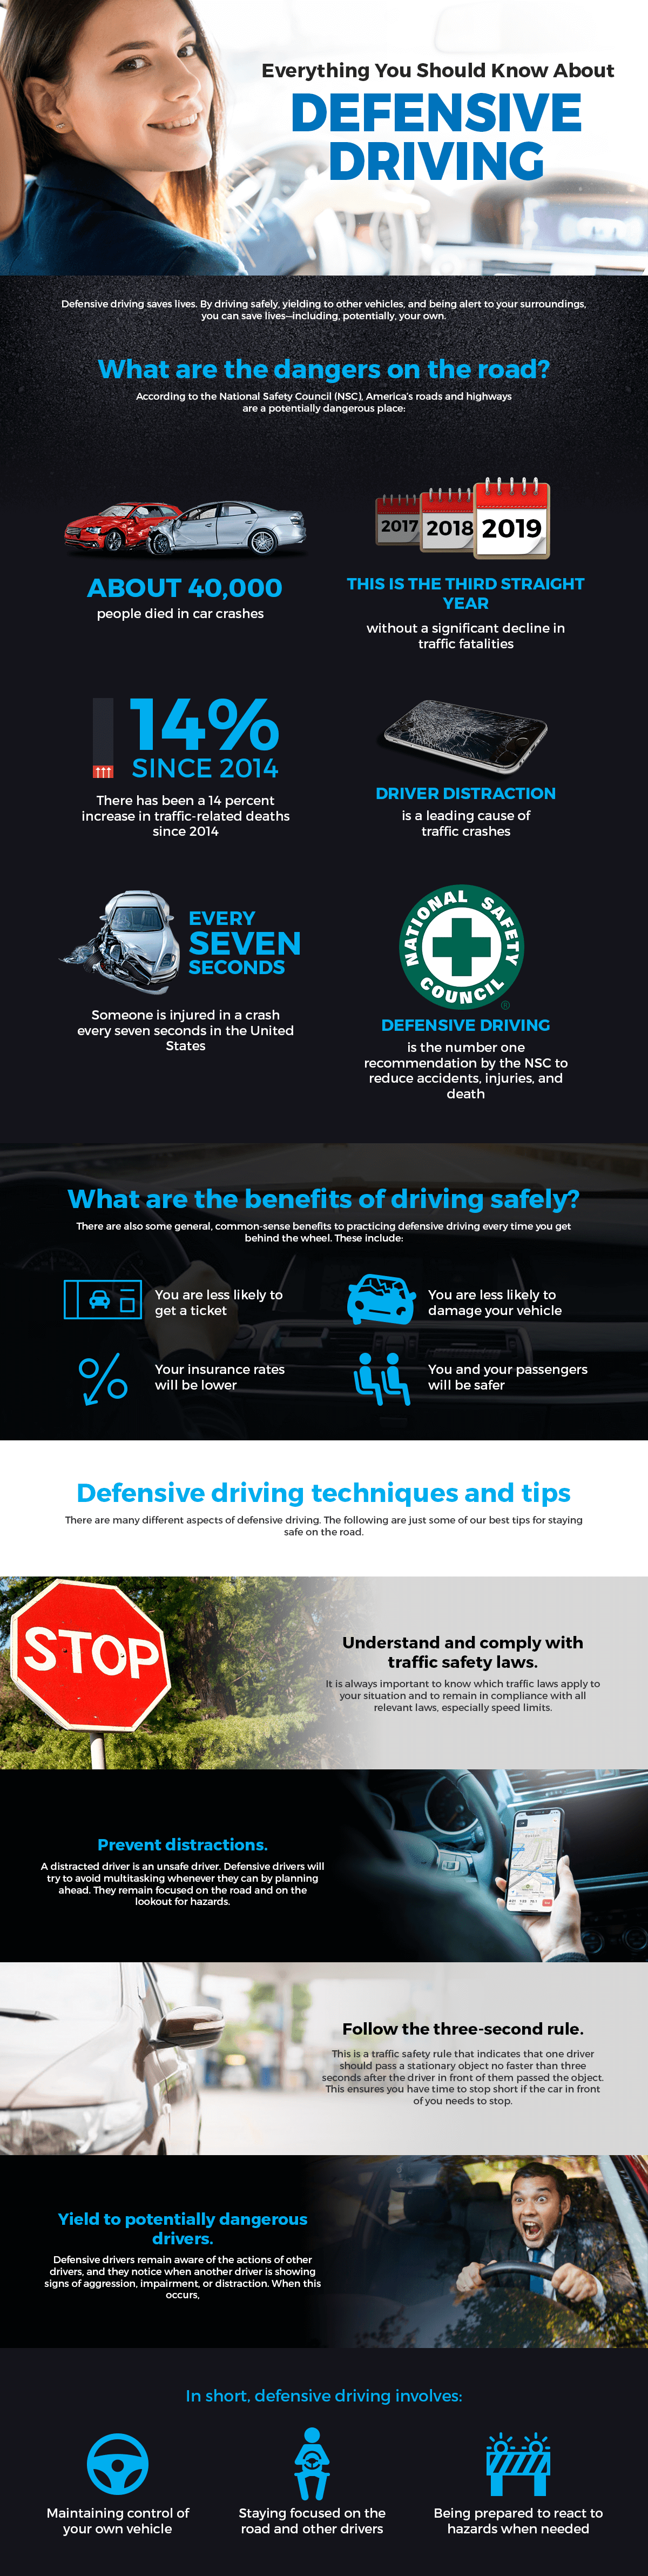 Infographic on Defensive Driving